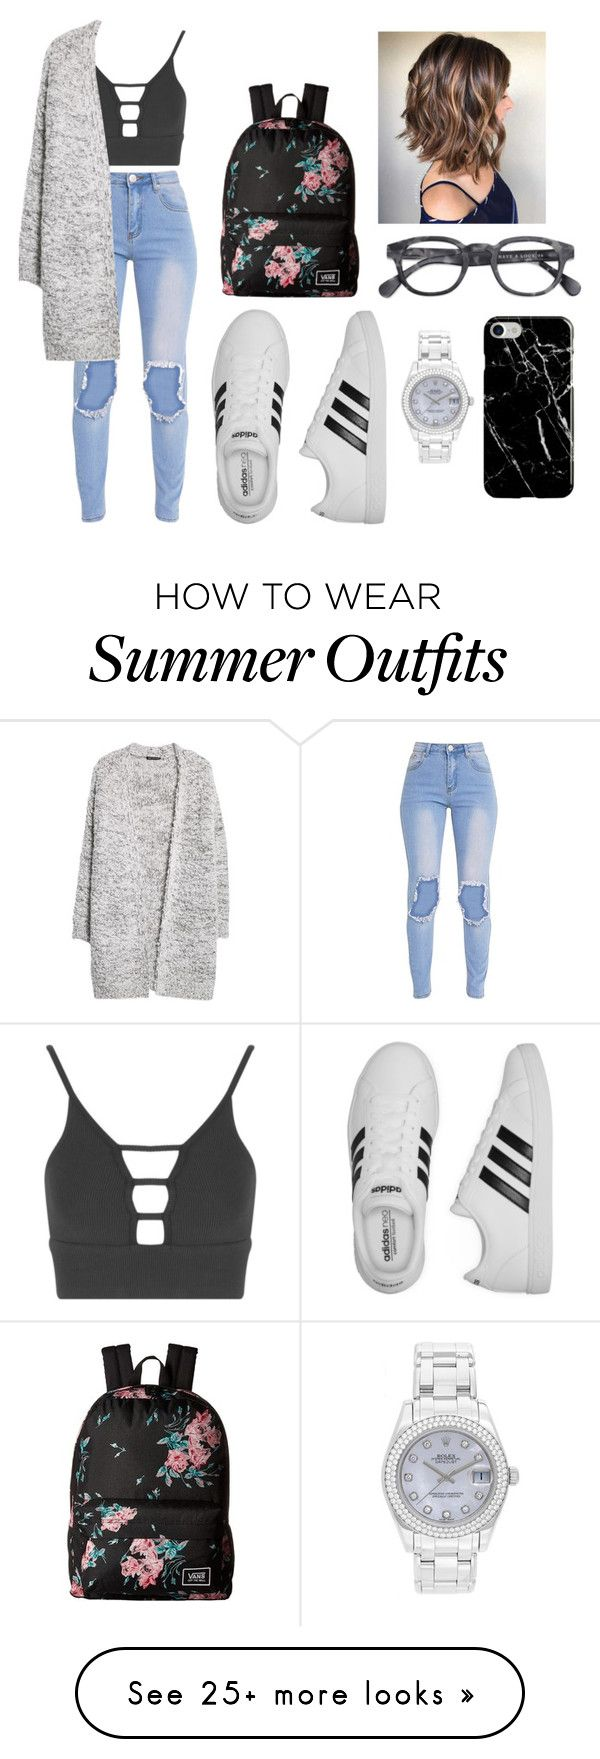 """""""this outfit pretty much suit meh personality"""" by macapugay-mariel on Polyvore featuring Topshop, MANGO, adidas, Vans, Rolex and Recover"""